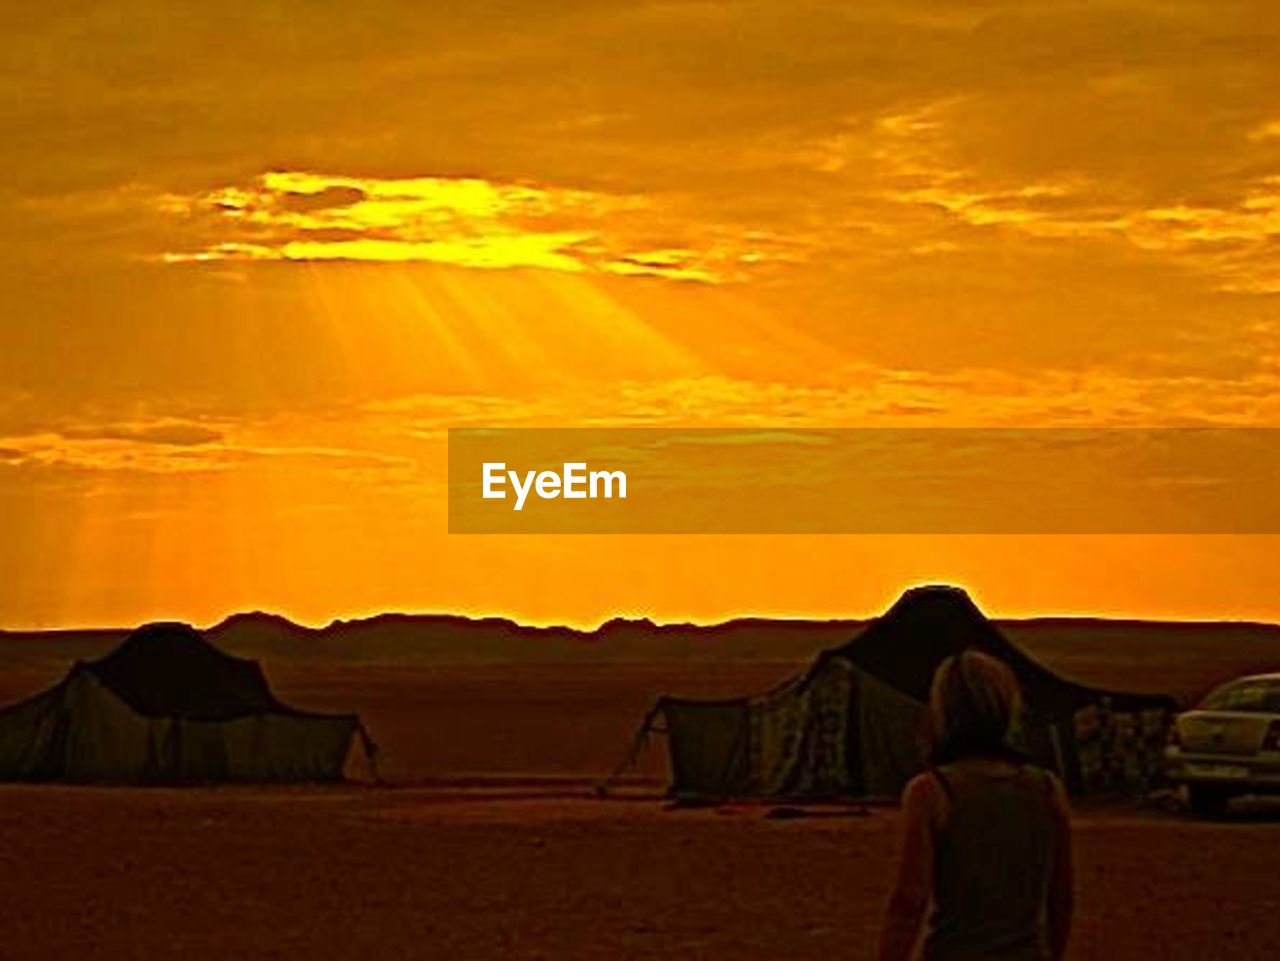 sunset, desert, sky, heat - temperature, outdoors, cloud - sky, silhouette, sunlight, scenics, nature, built structure, arid climate, building exterior, architecture, beauty in nature, adult, people, day